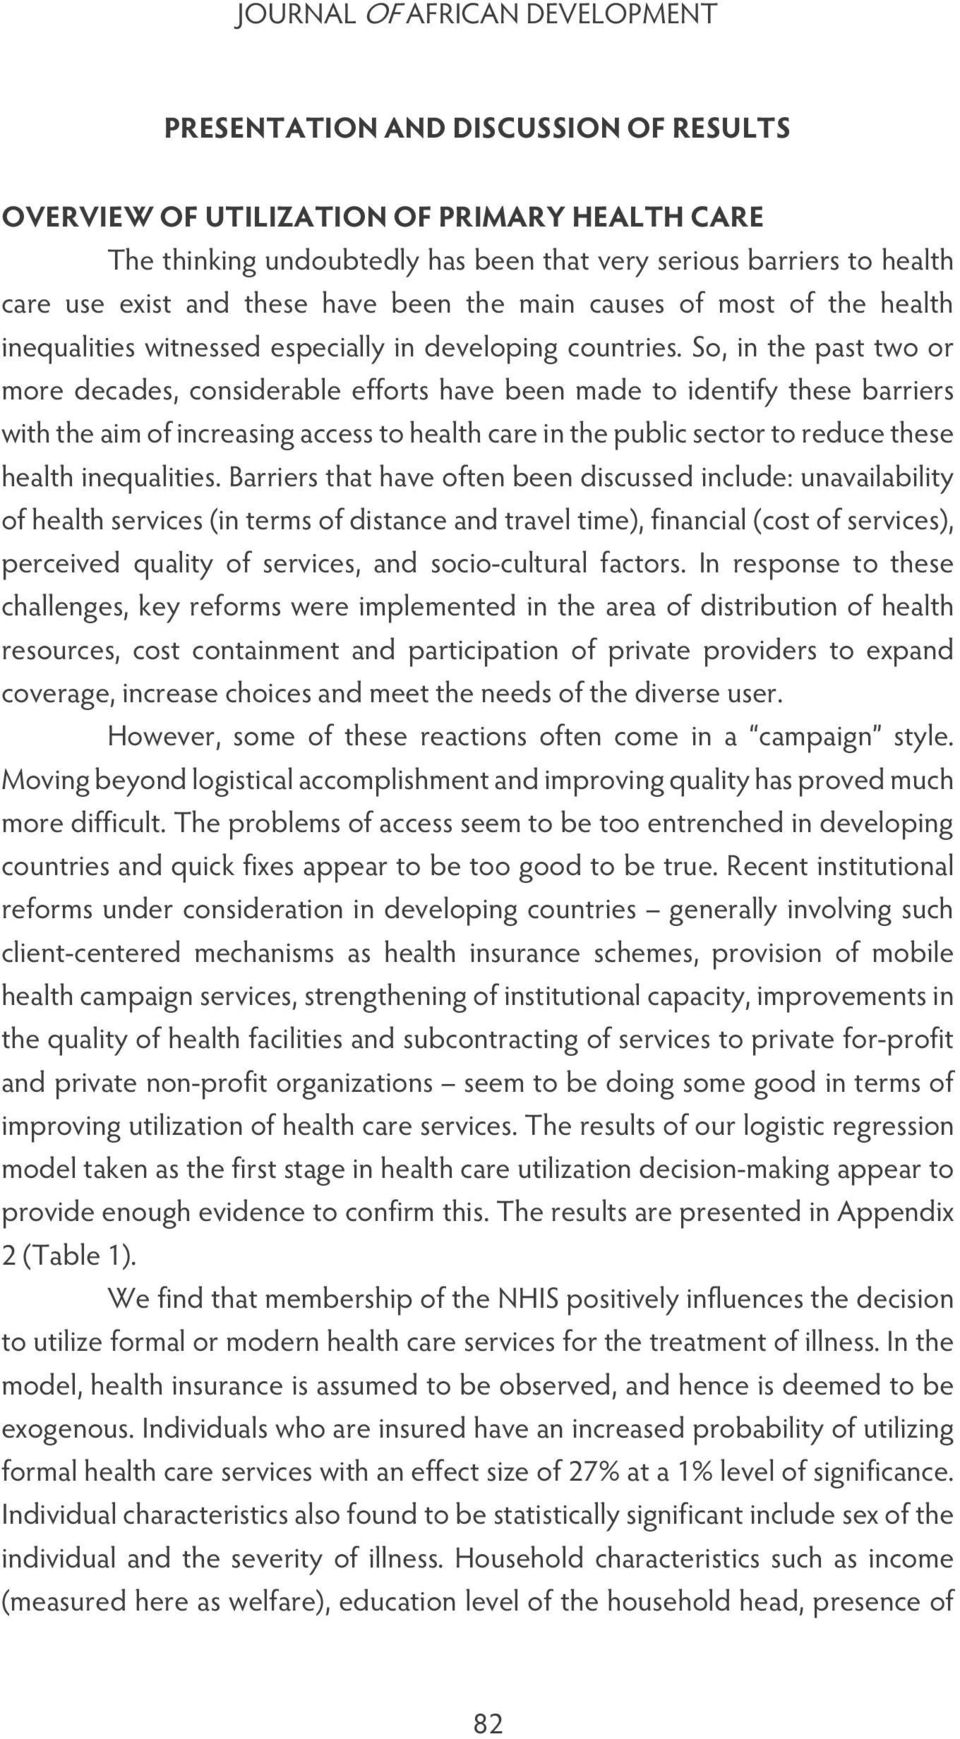 So, in the past two or more decades, considerable efforts have been made to identify these barriers with the aim of increasing access to health care in the public sector to reduce these health